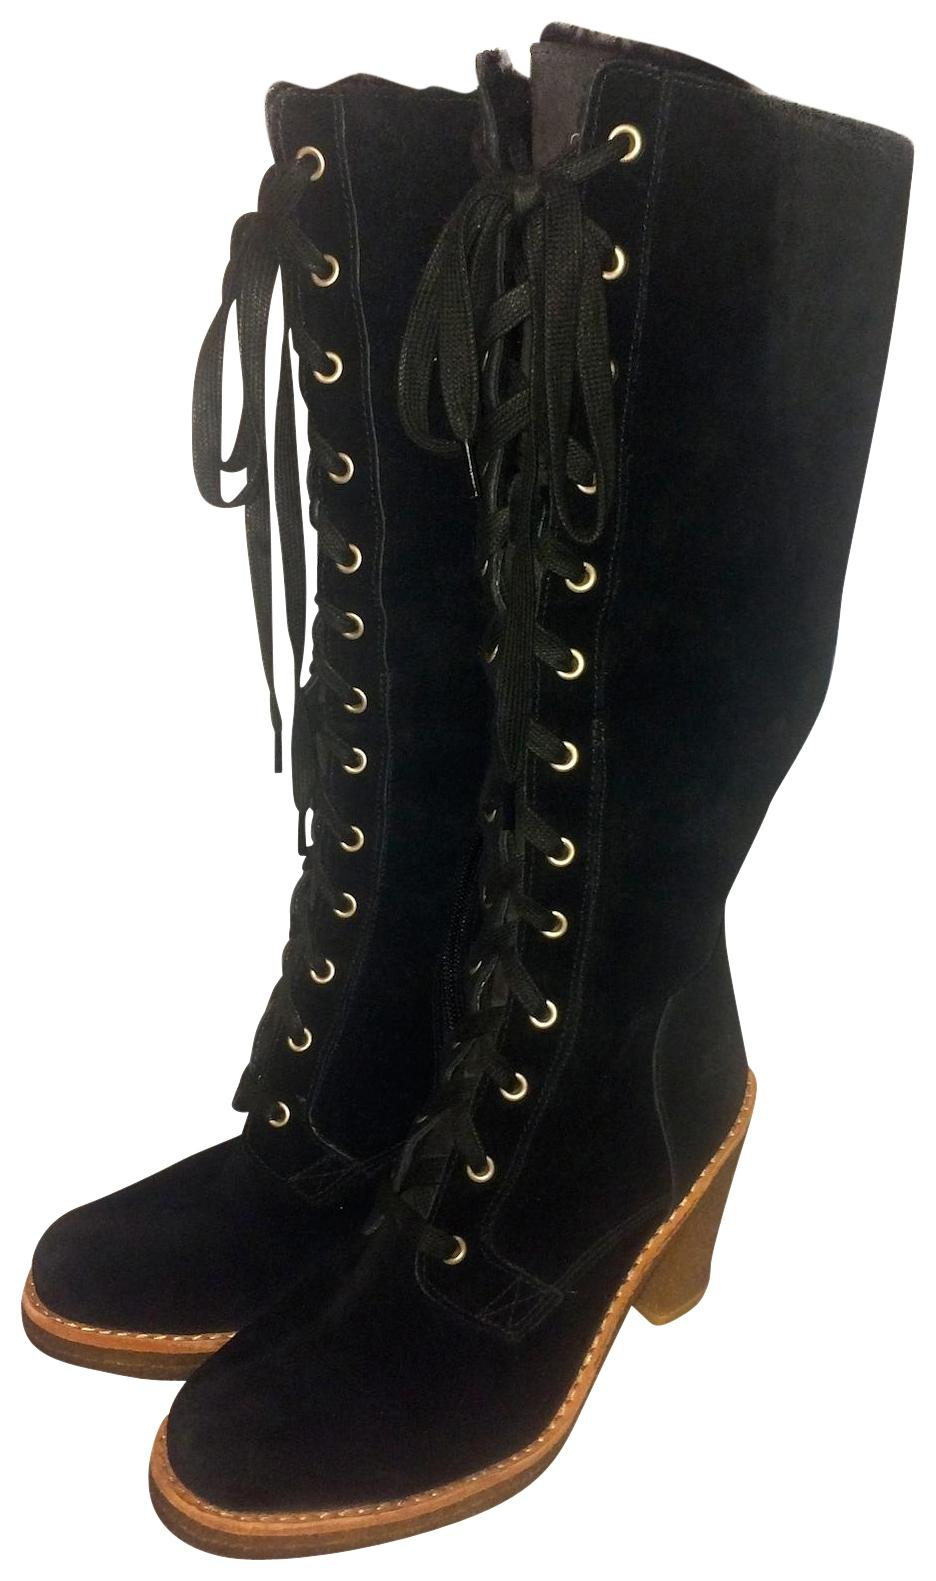 66d2f1536e7 release date ugg tall lace up boots ddf88 8b562